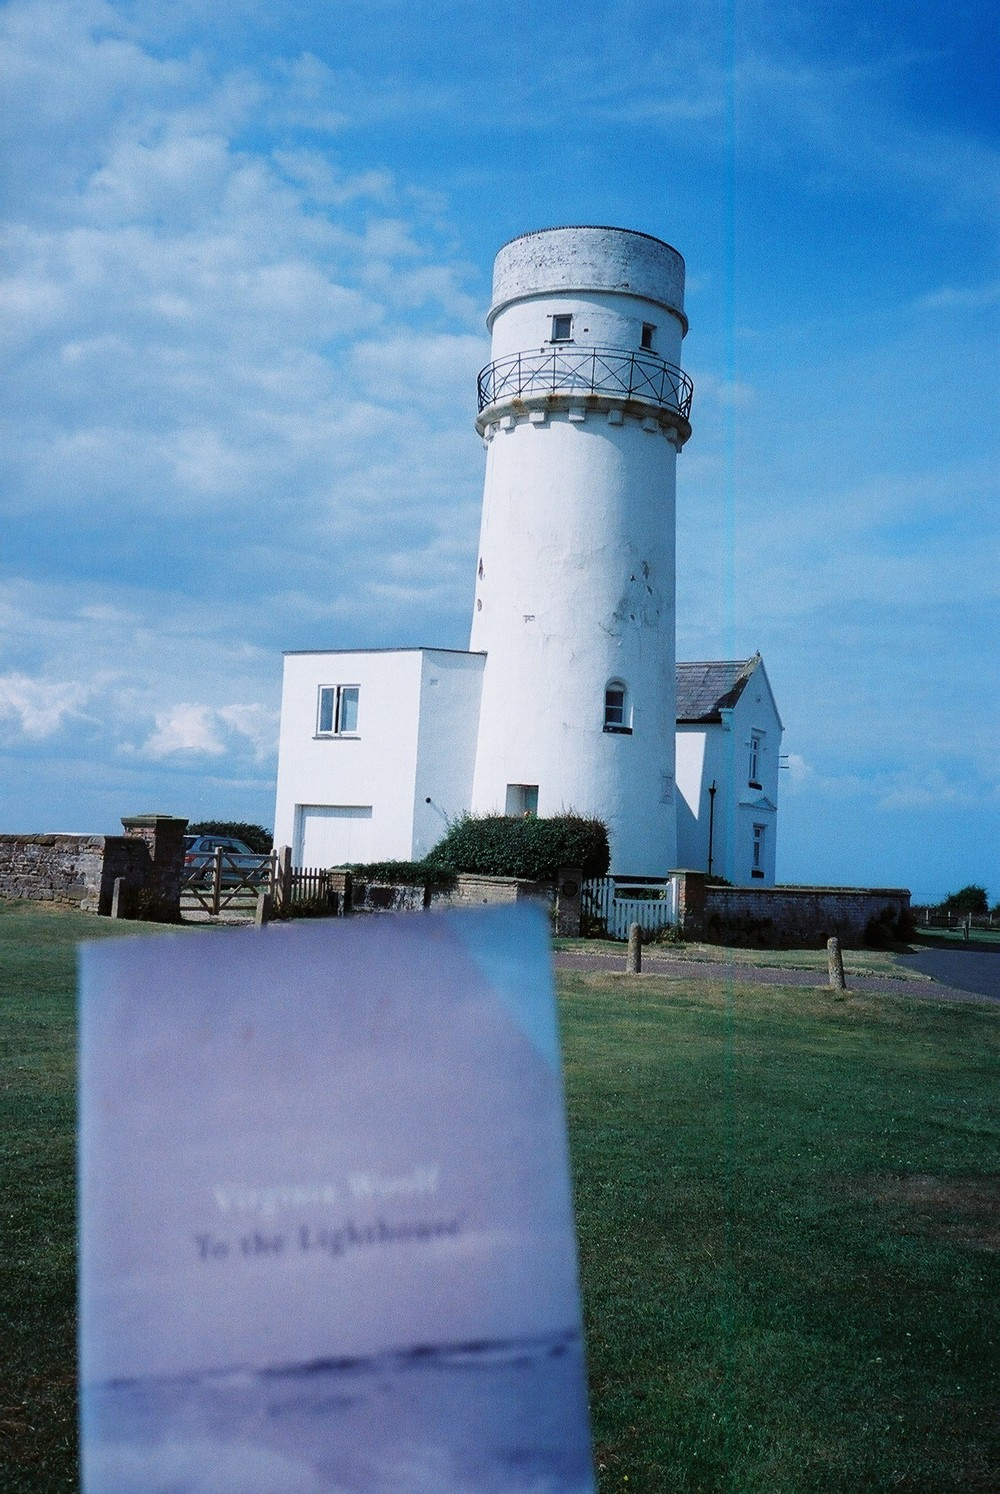 To the Lighthouse! Tally ho! and don't spare the 'oses!